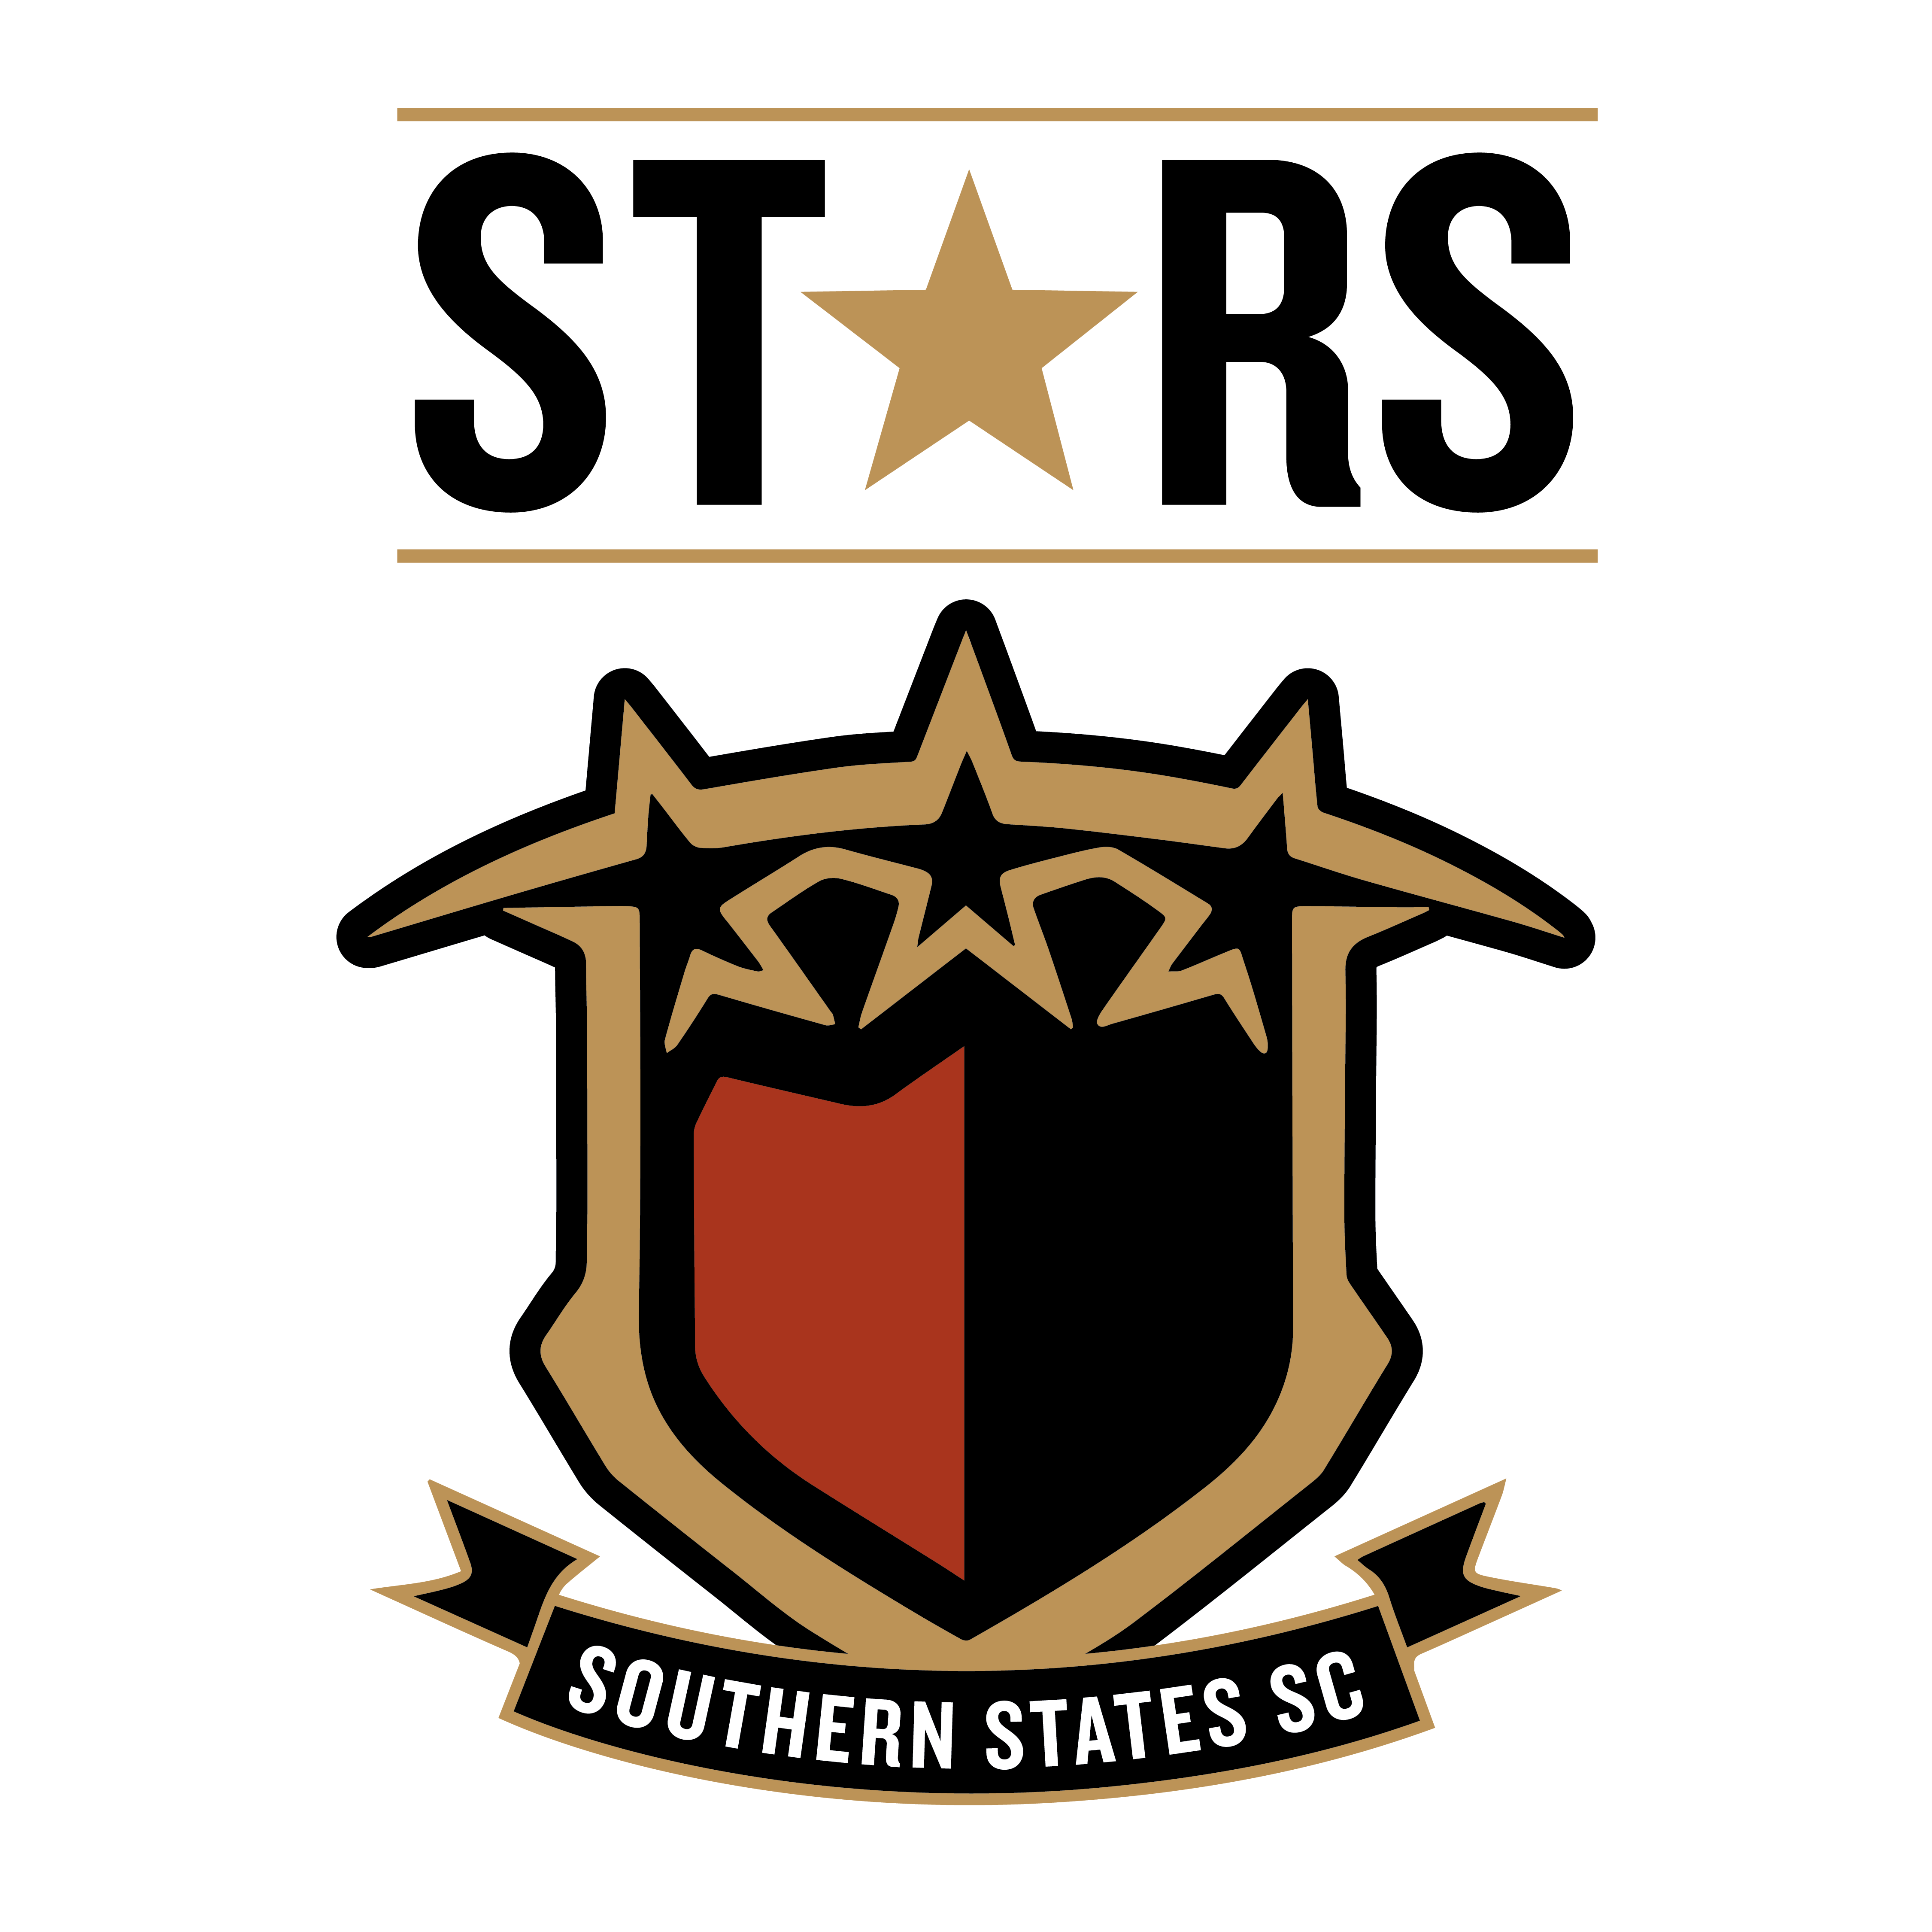 Southern States SC Stars